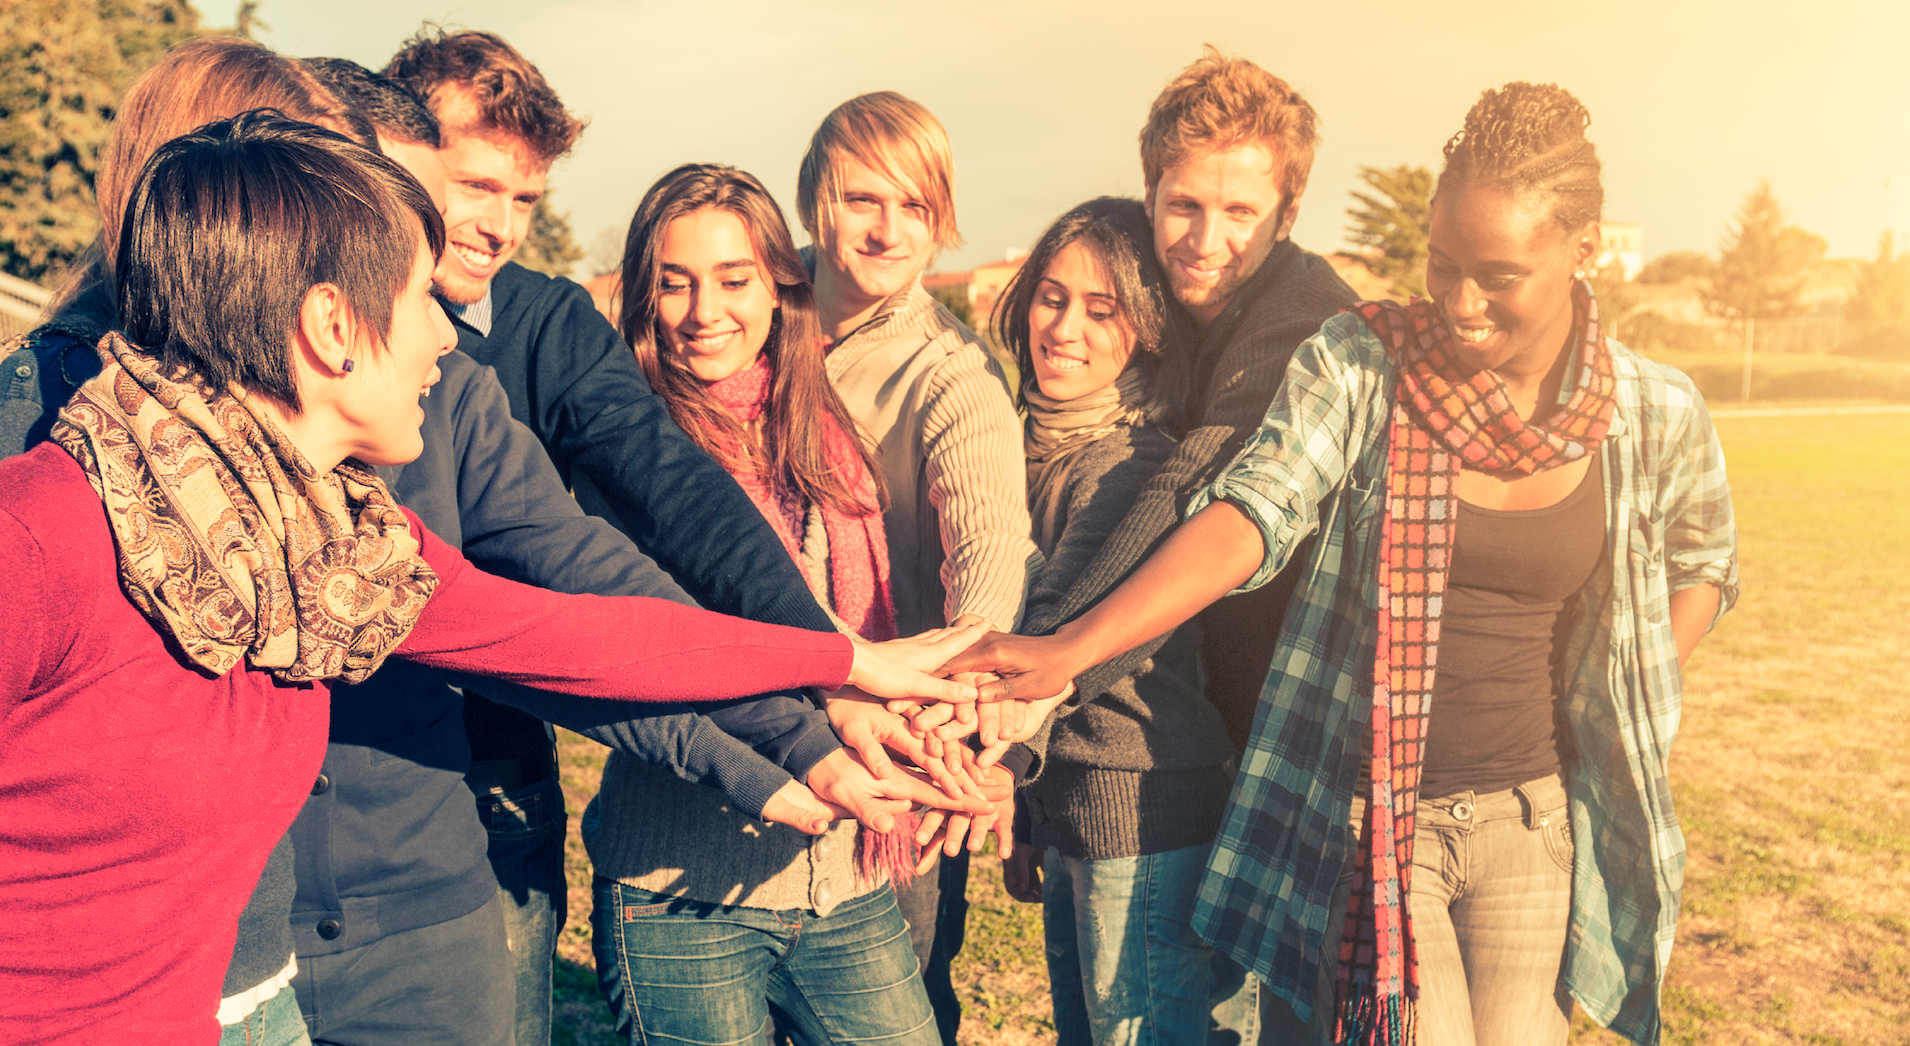 Three Ways To Engage The Next Generation Of Fundraisers